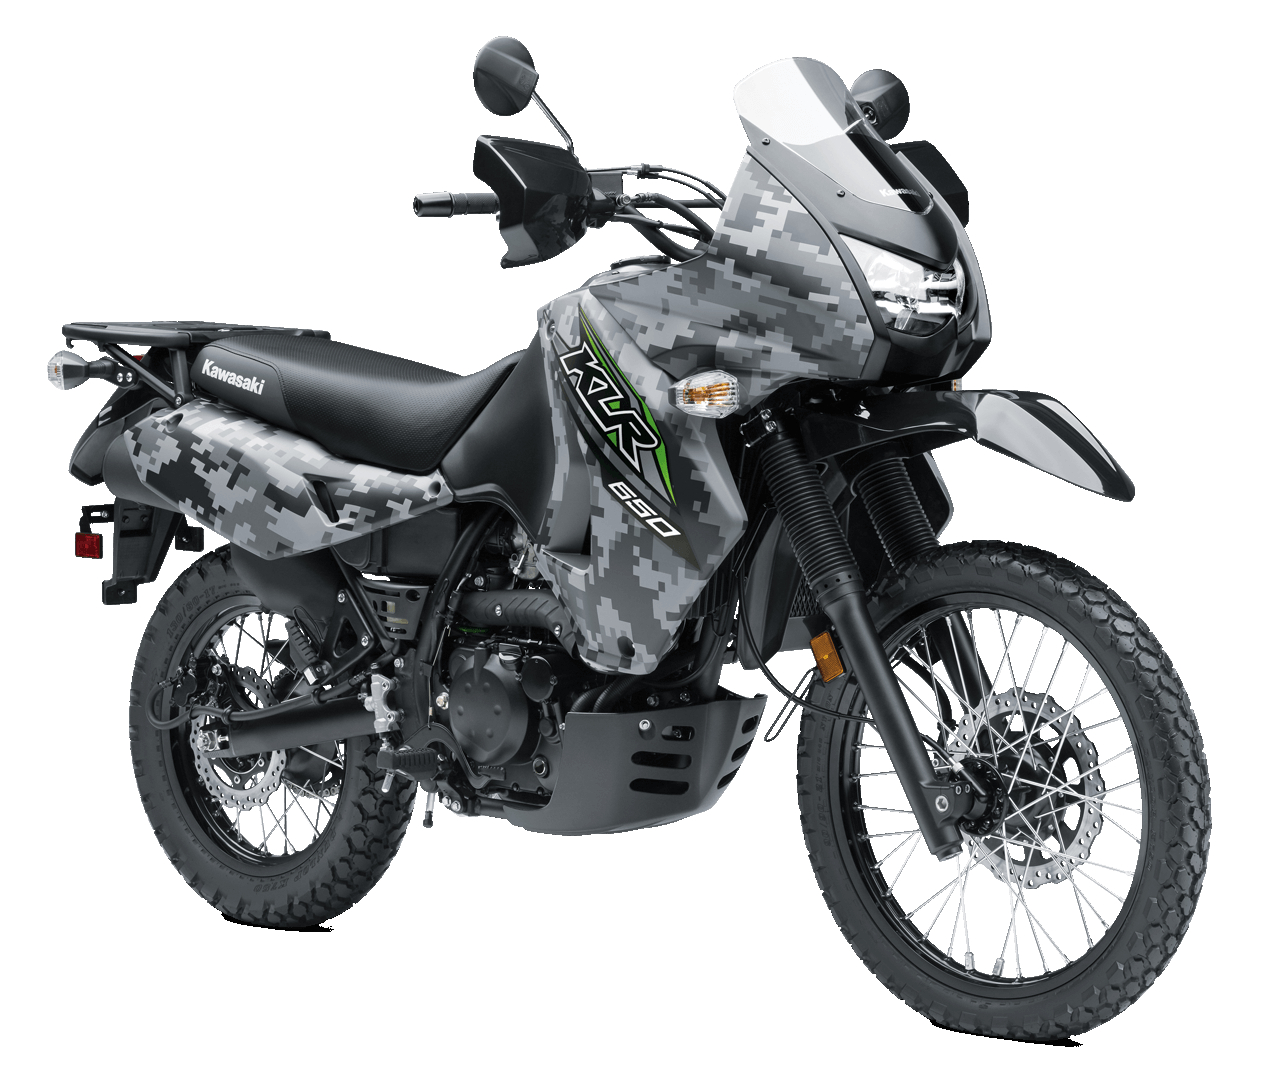 A Brief History Of The Kawasaki Klr650